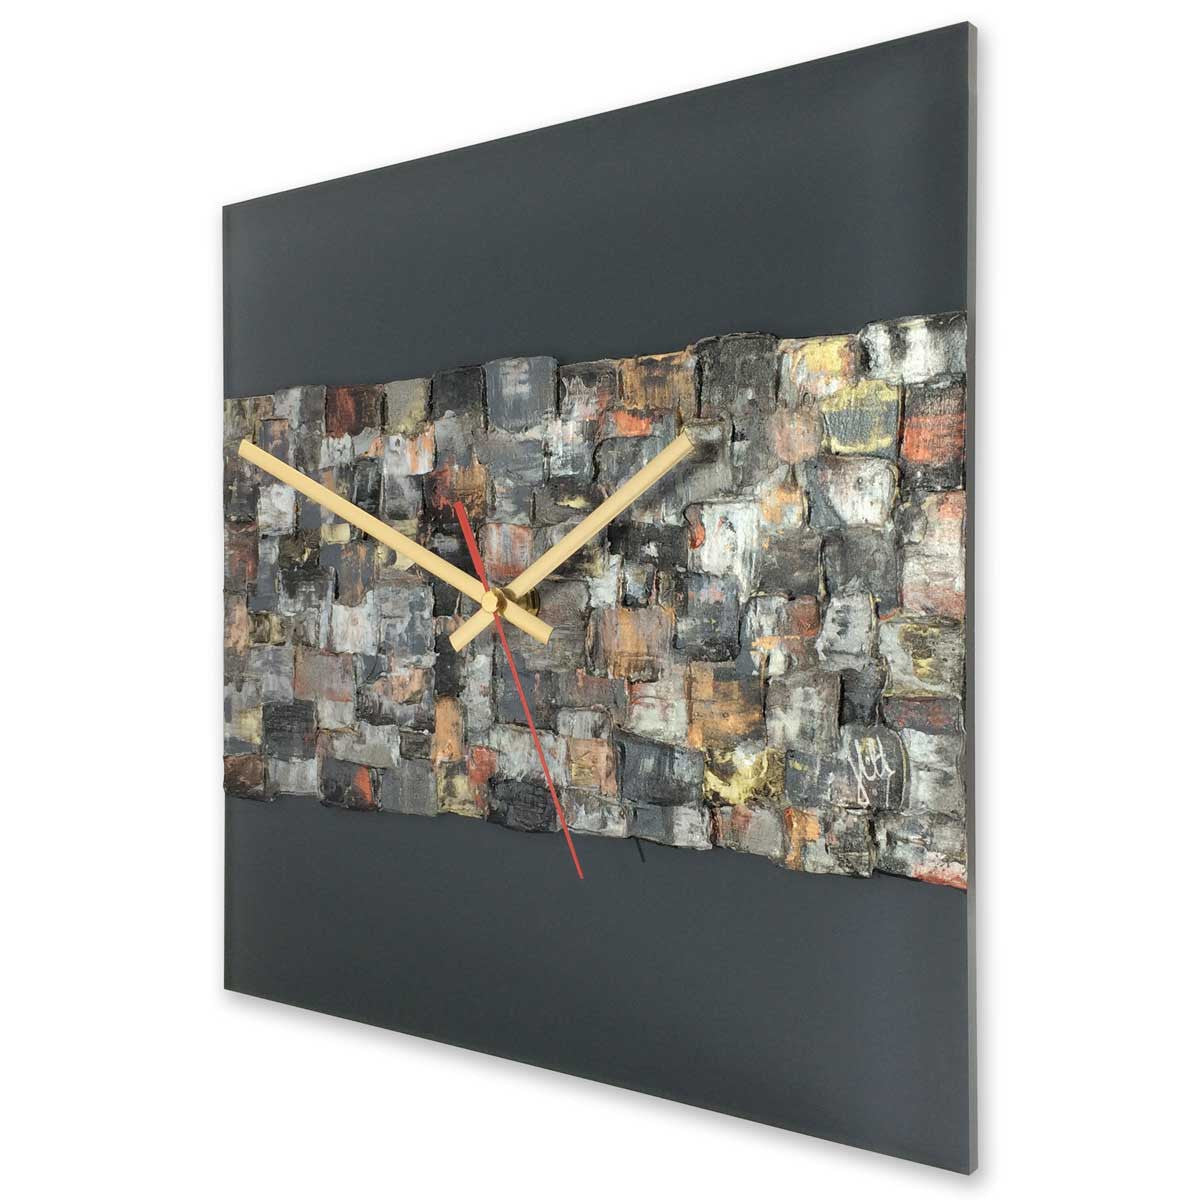 Square 30cm wall clock on anthracite grey plexiglass - JLH30SQ1